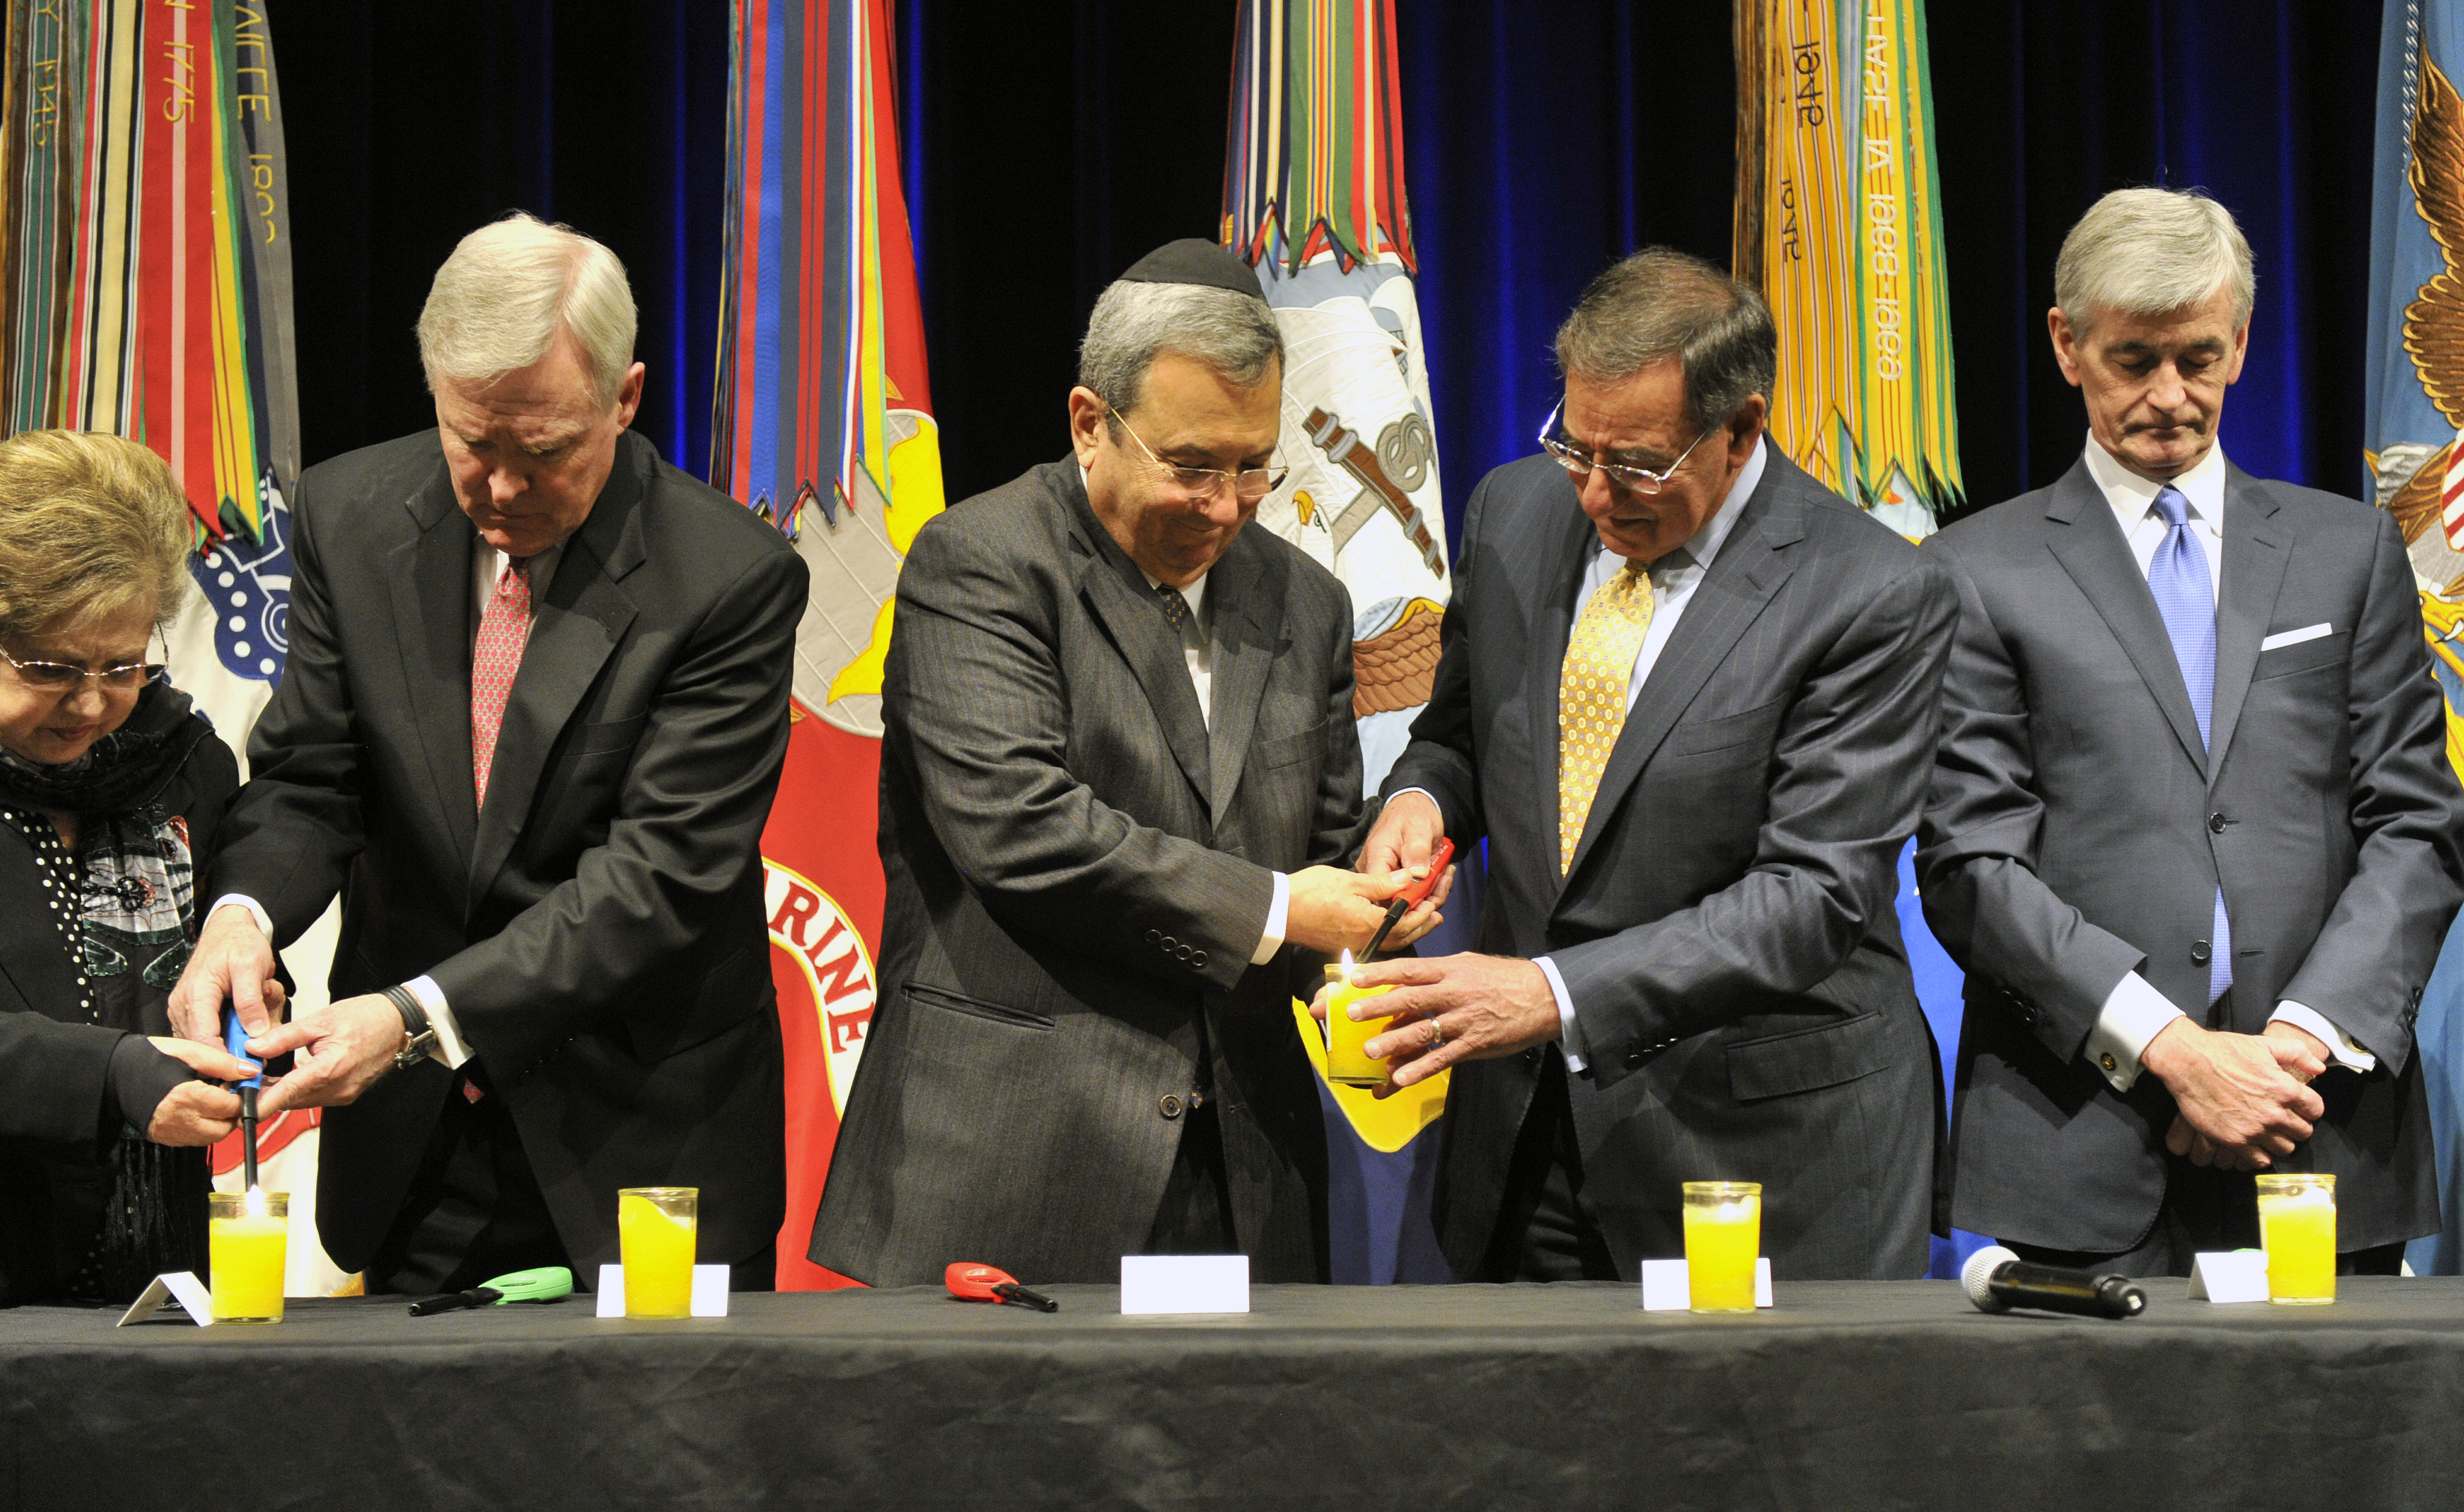 Secretary Panetta and Israeli Defense Minister Barak Light a Candle at Holocaust Remembrance Ceremony